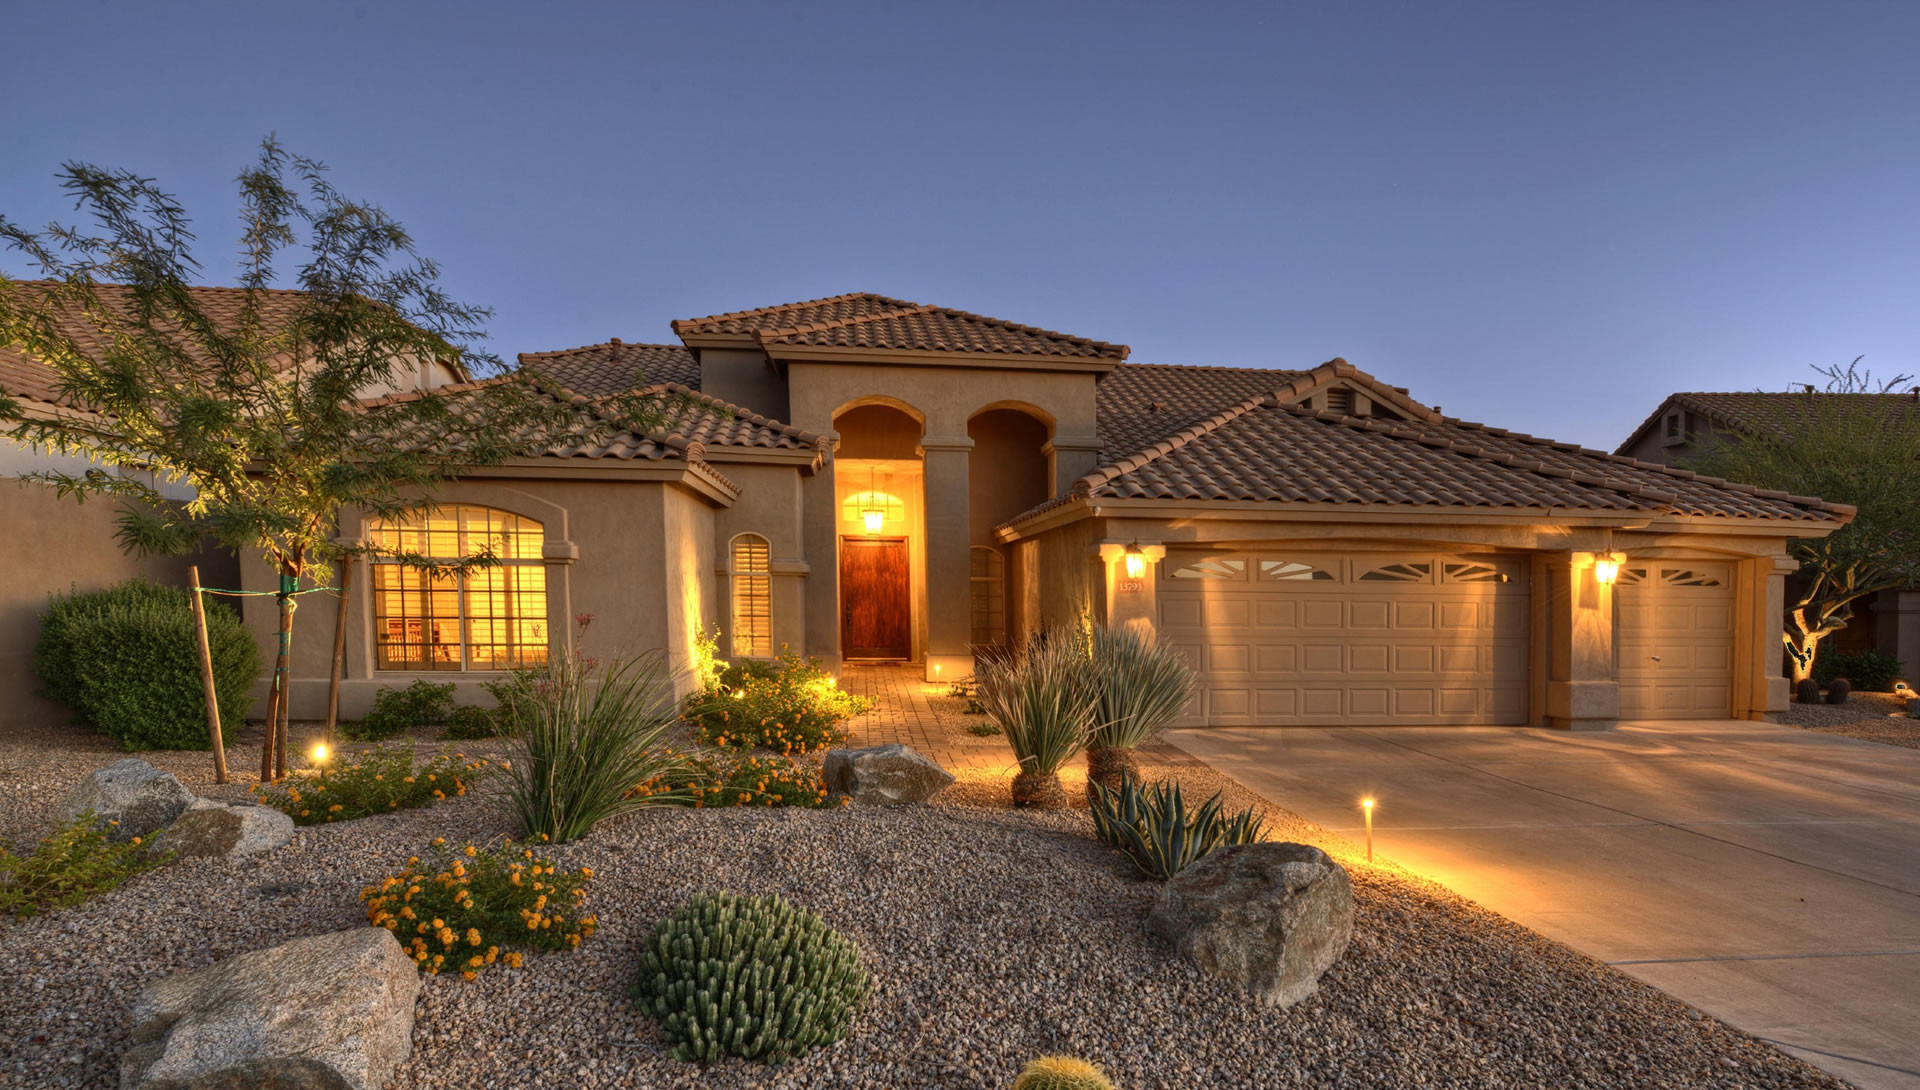 Homes For Sale In Peoria Az